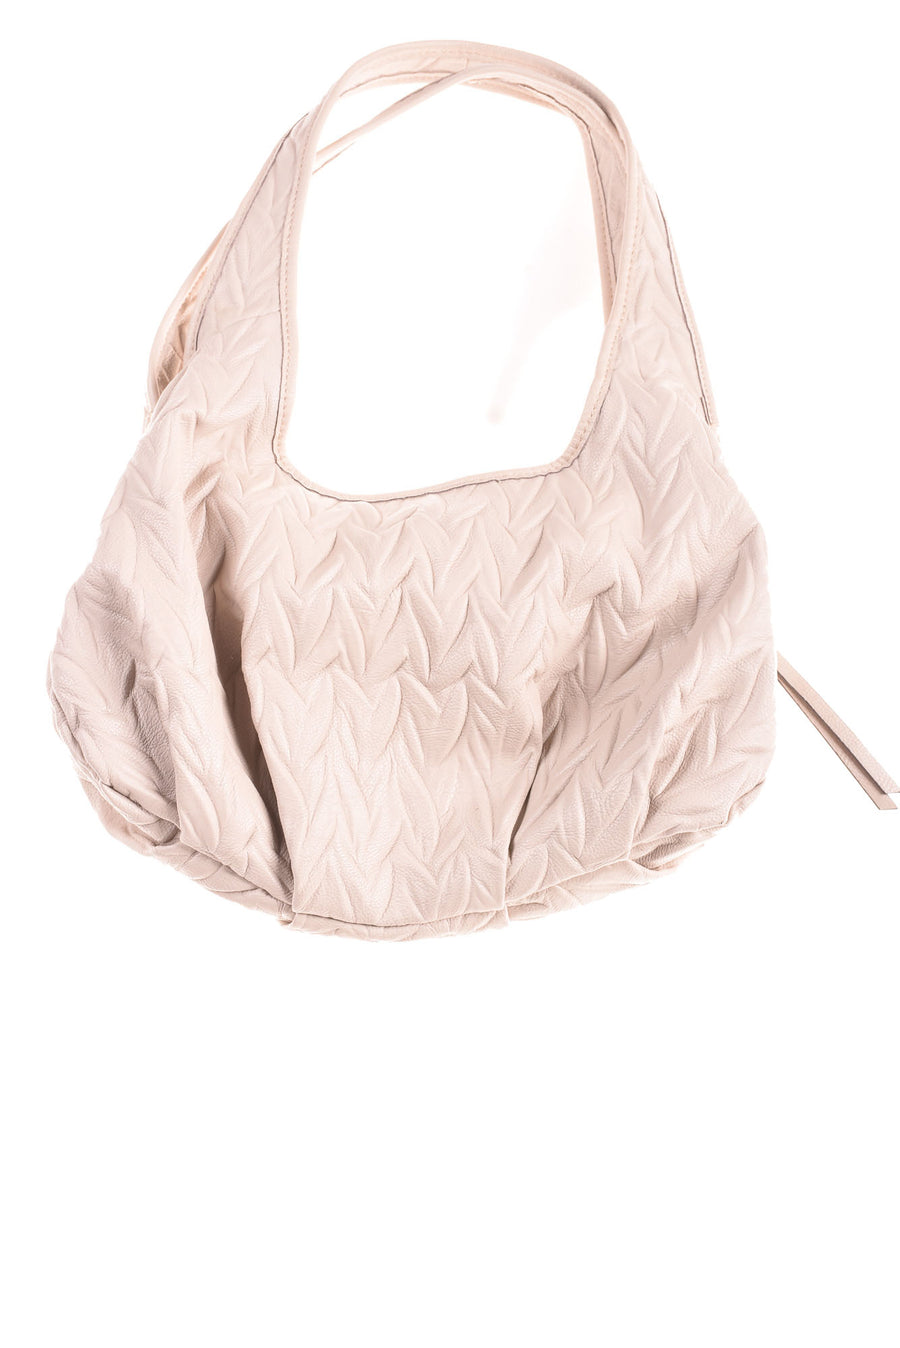 Women's Handbag By Simply Vera